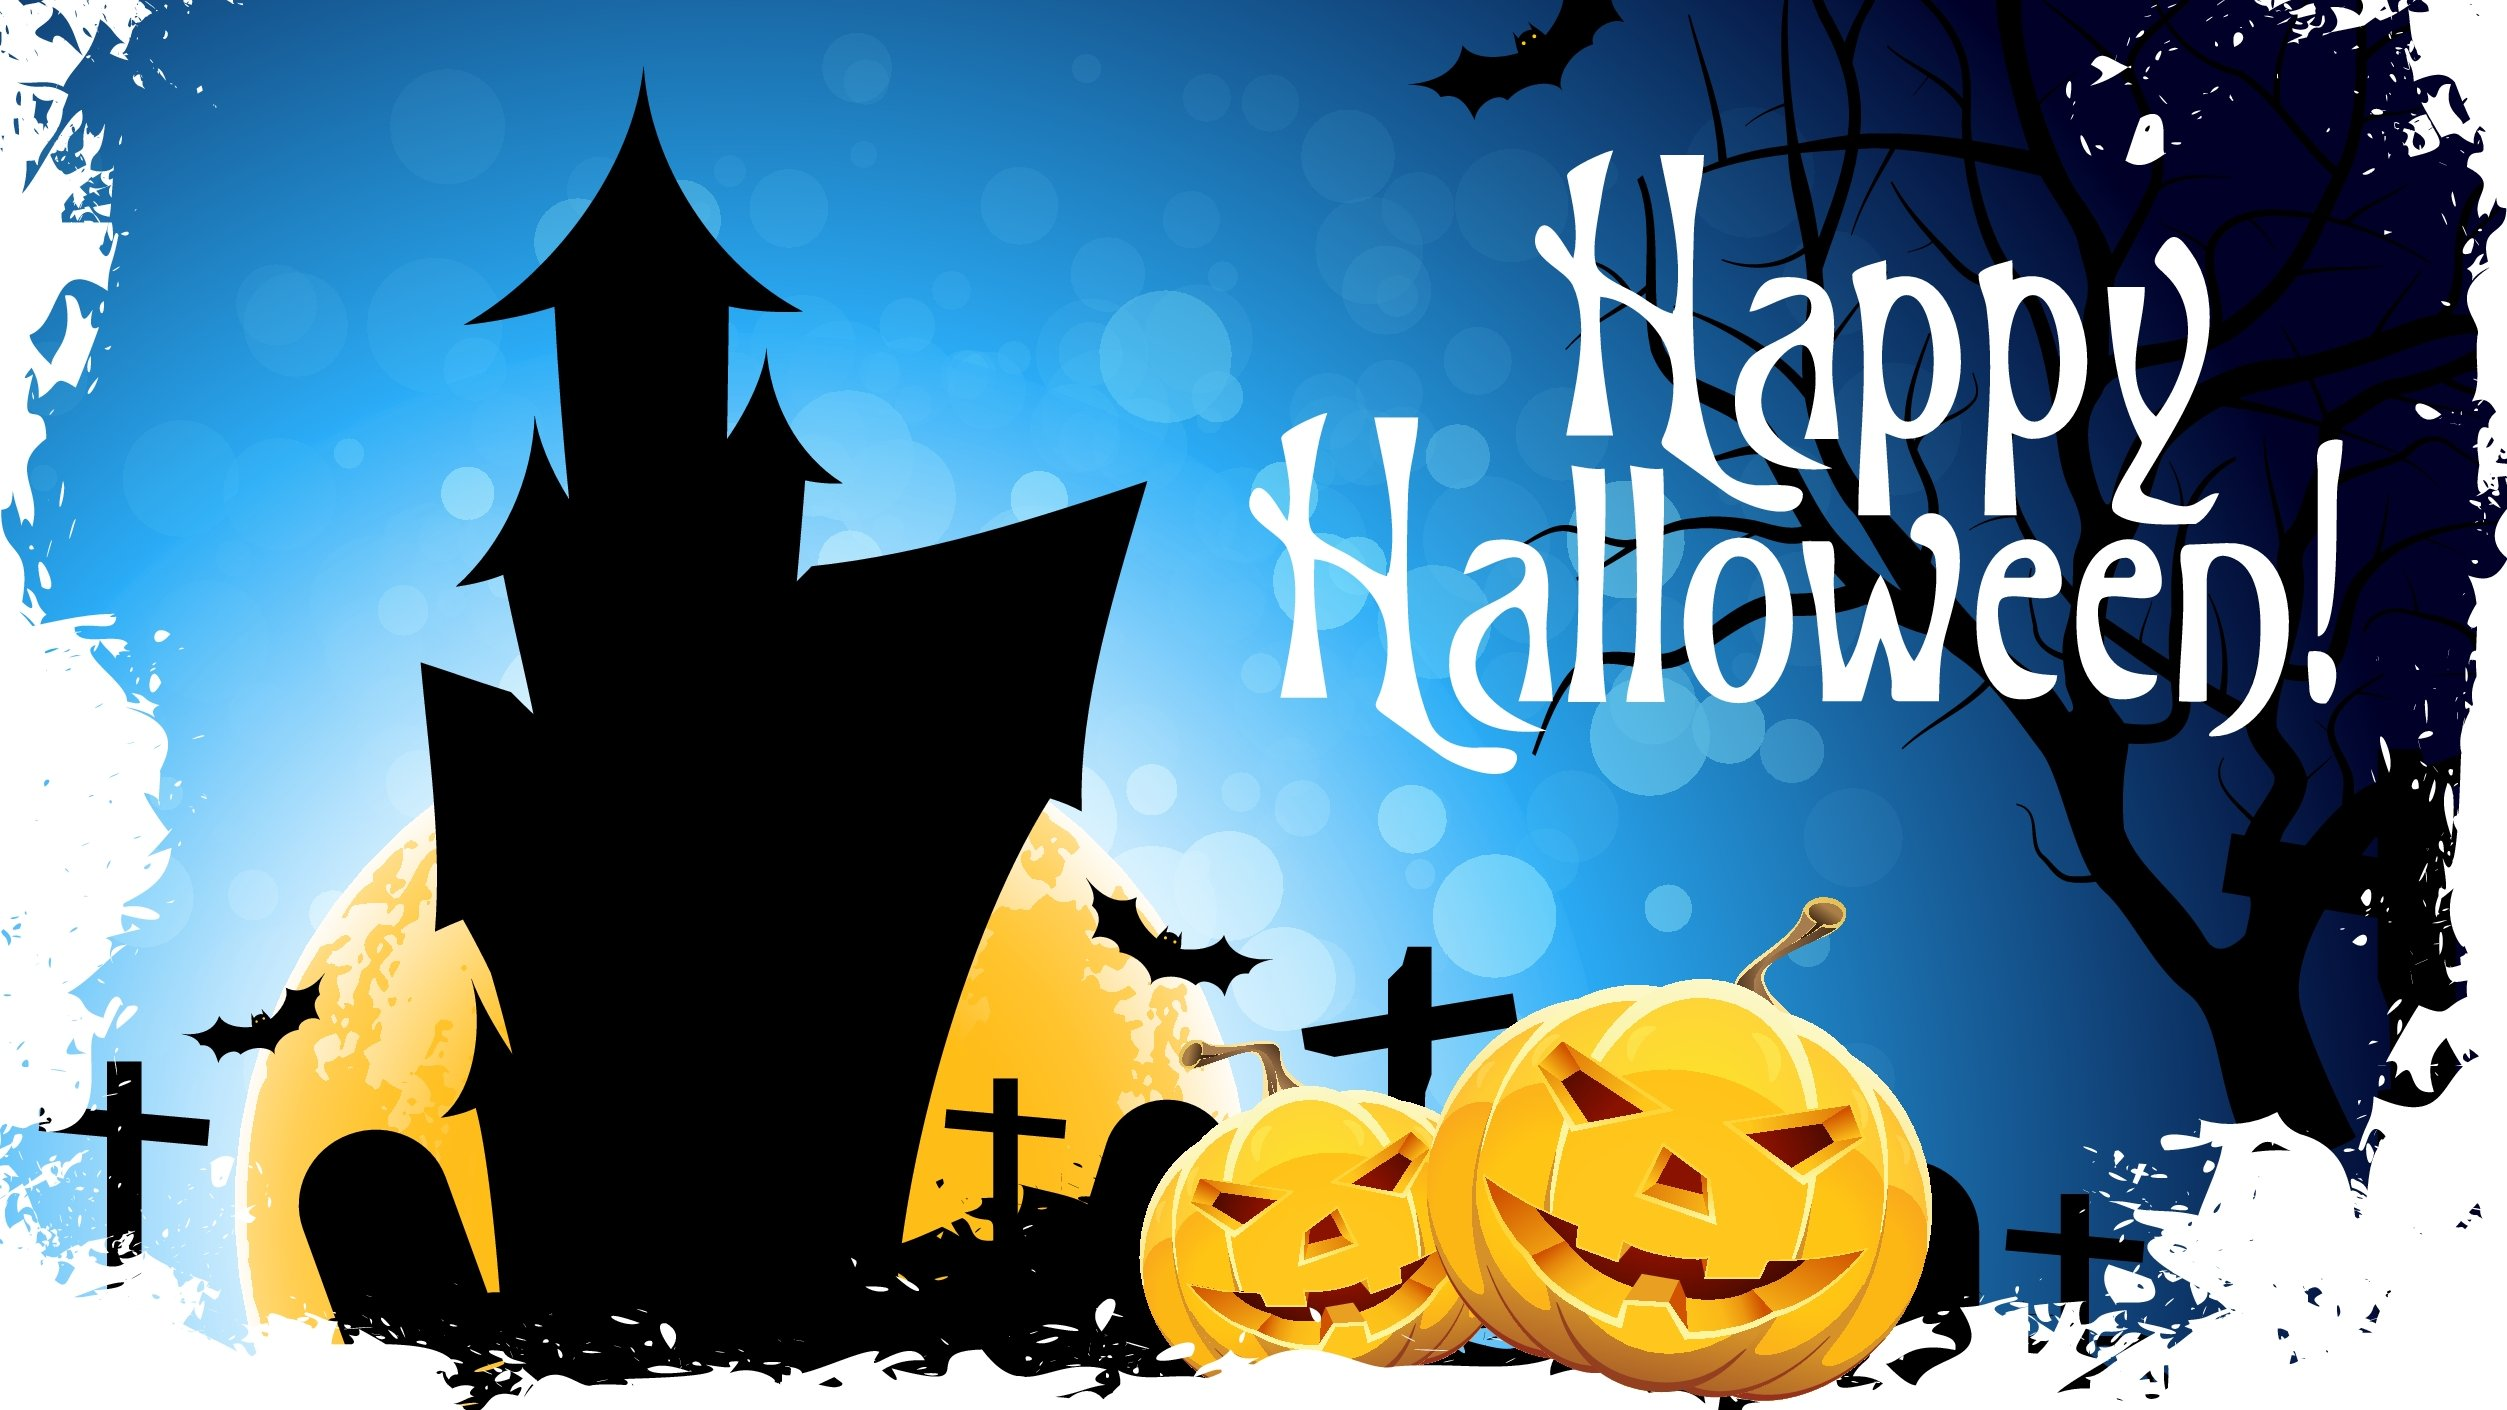 Have a Happy Halloween!